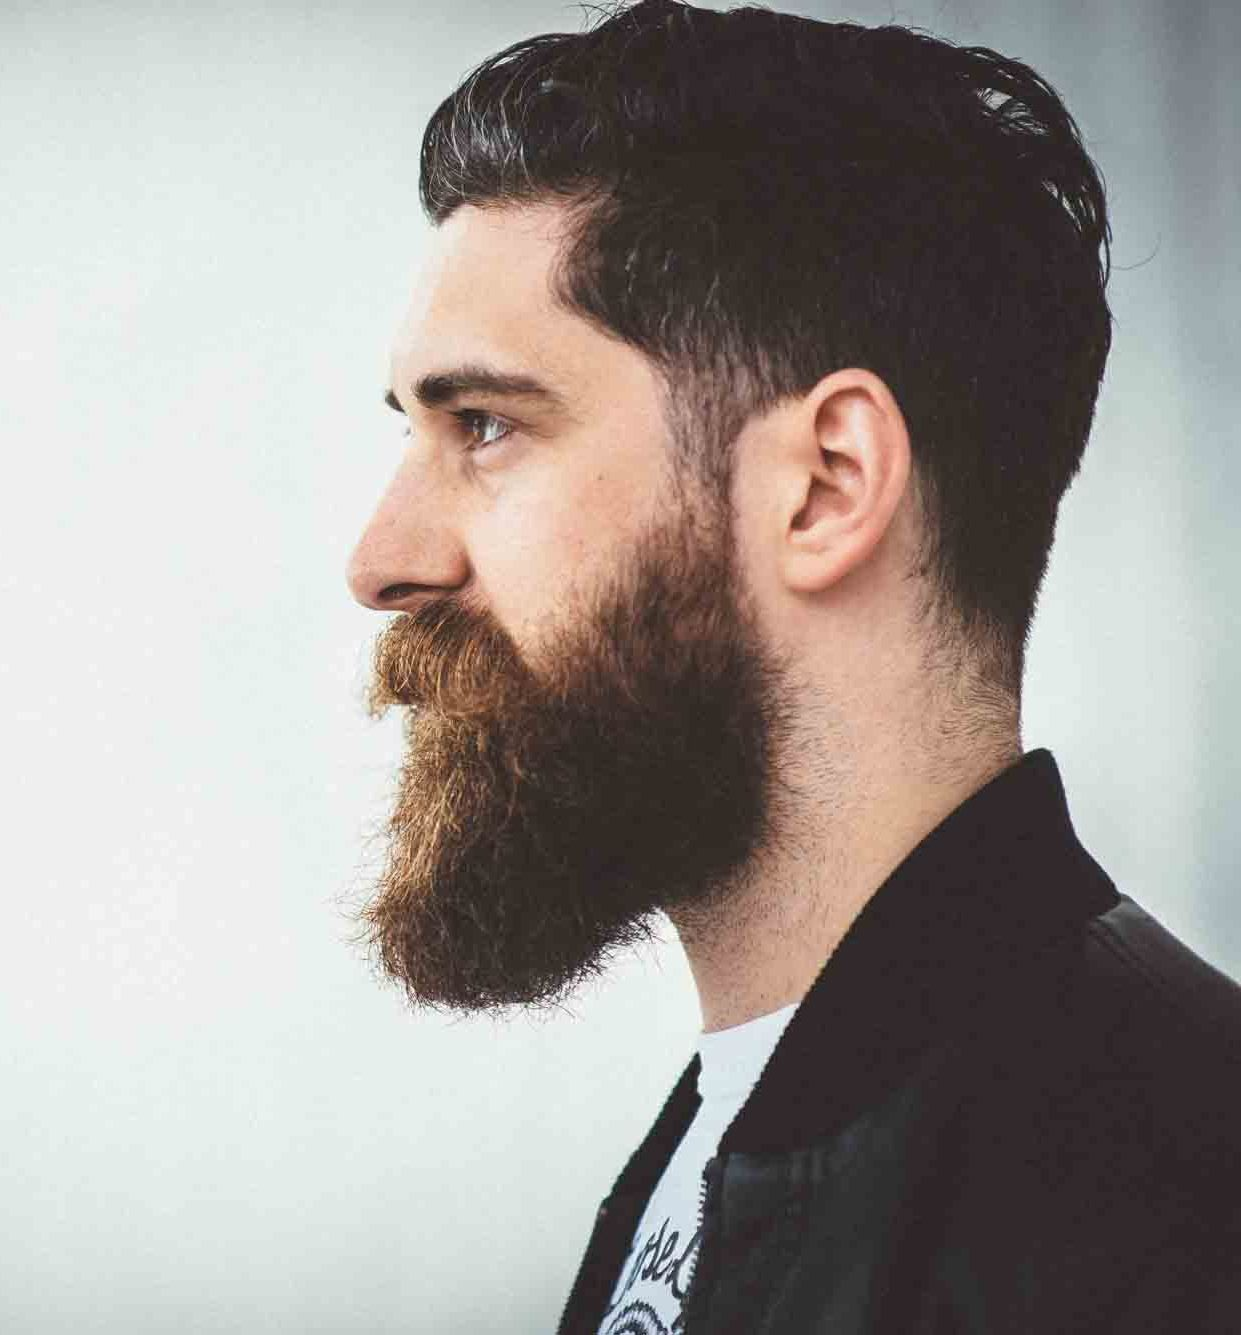 Wondrous 1000 Ideas About Beard Styles Pictures On Pinterest Men Facial Short Hairstyles For Black Women Fulllsitofus